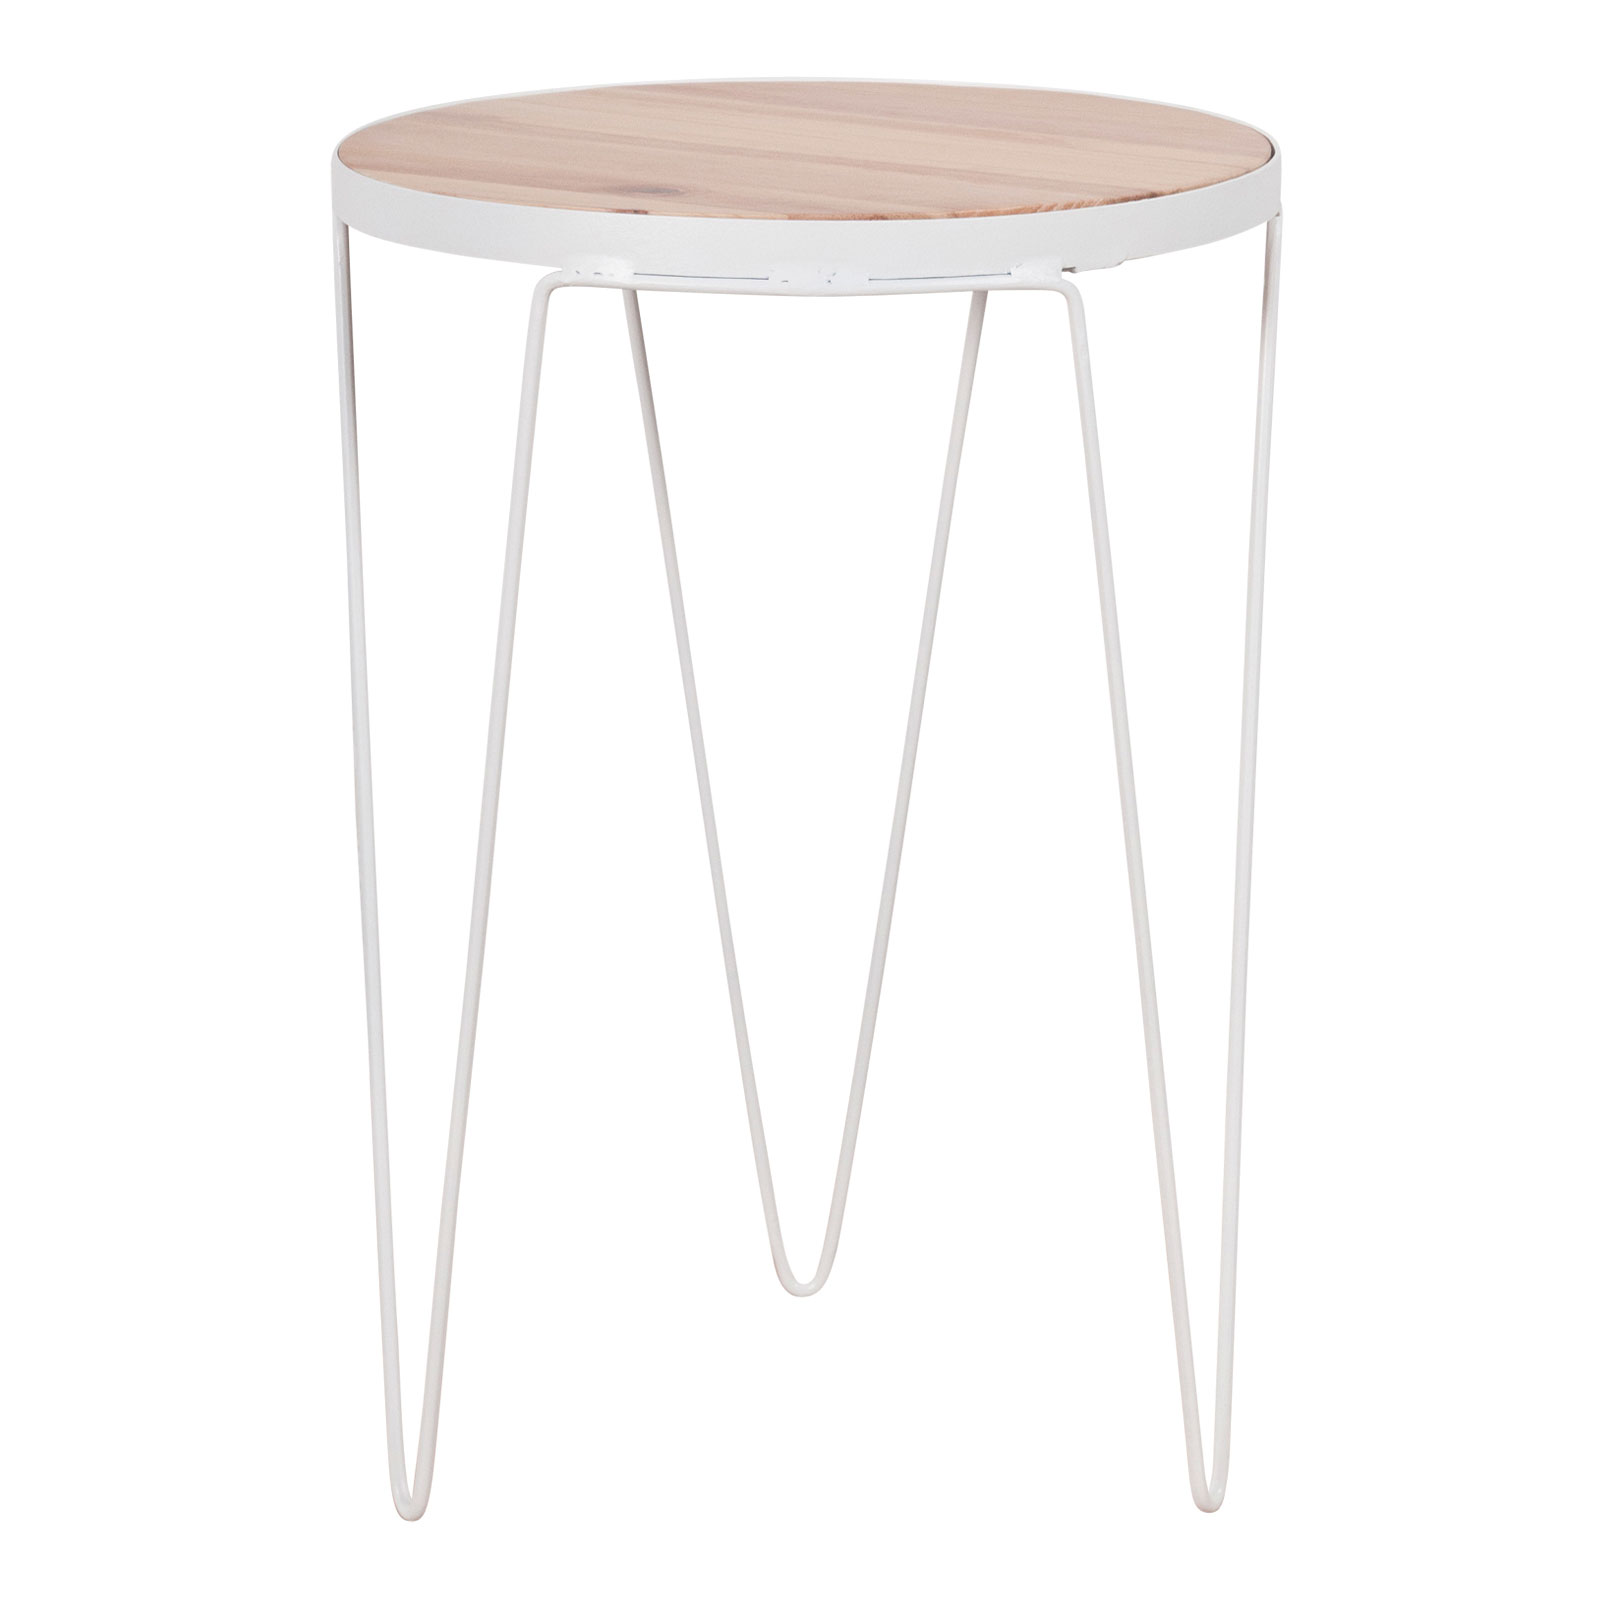 accent tables table modern white side tall round end small decorative coffee with storage and sets drawer full size amazing inch nightstand rustic argos bedside cabinets nursery